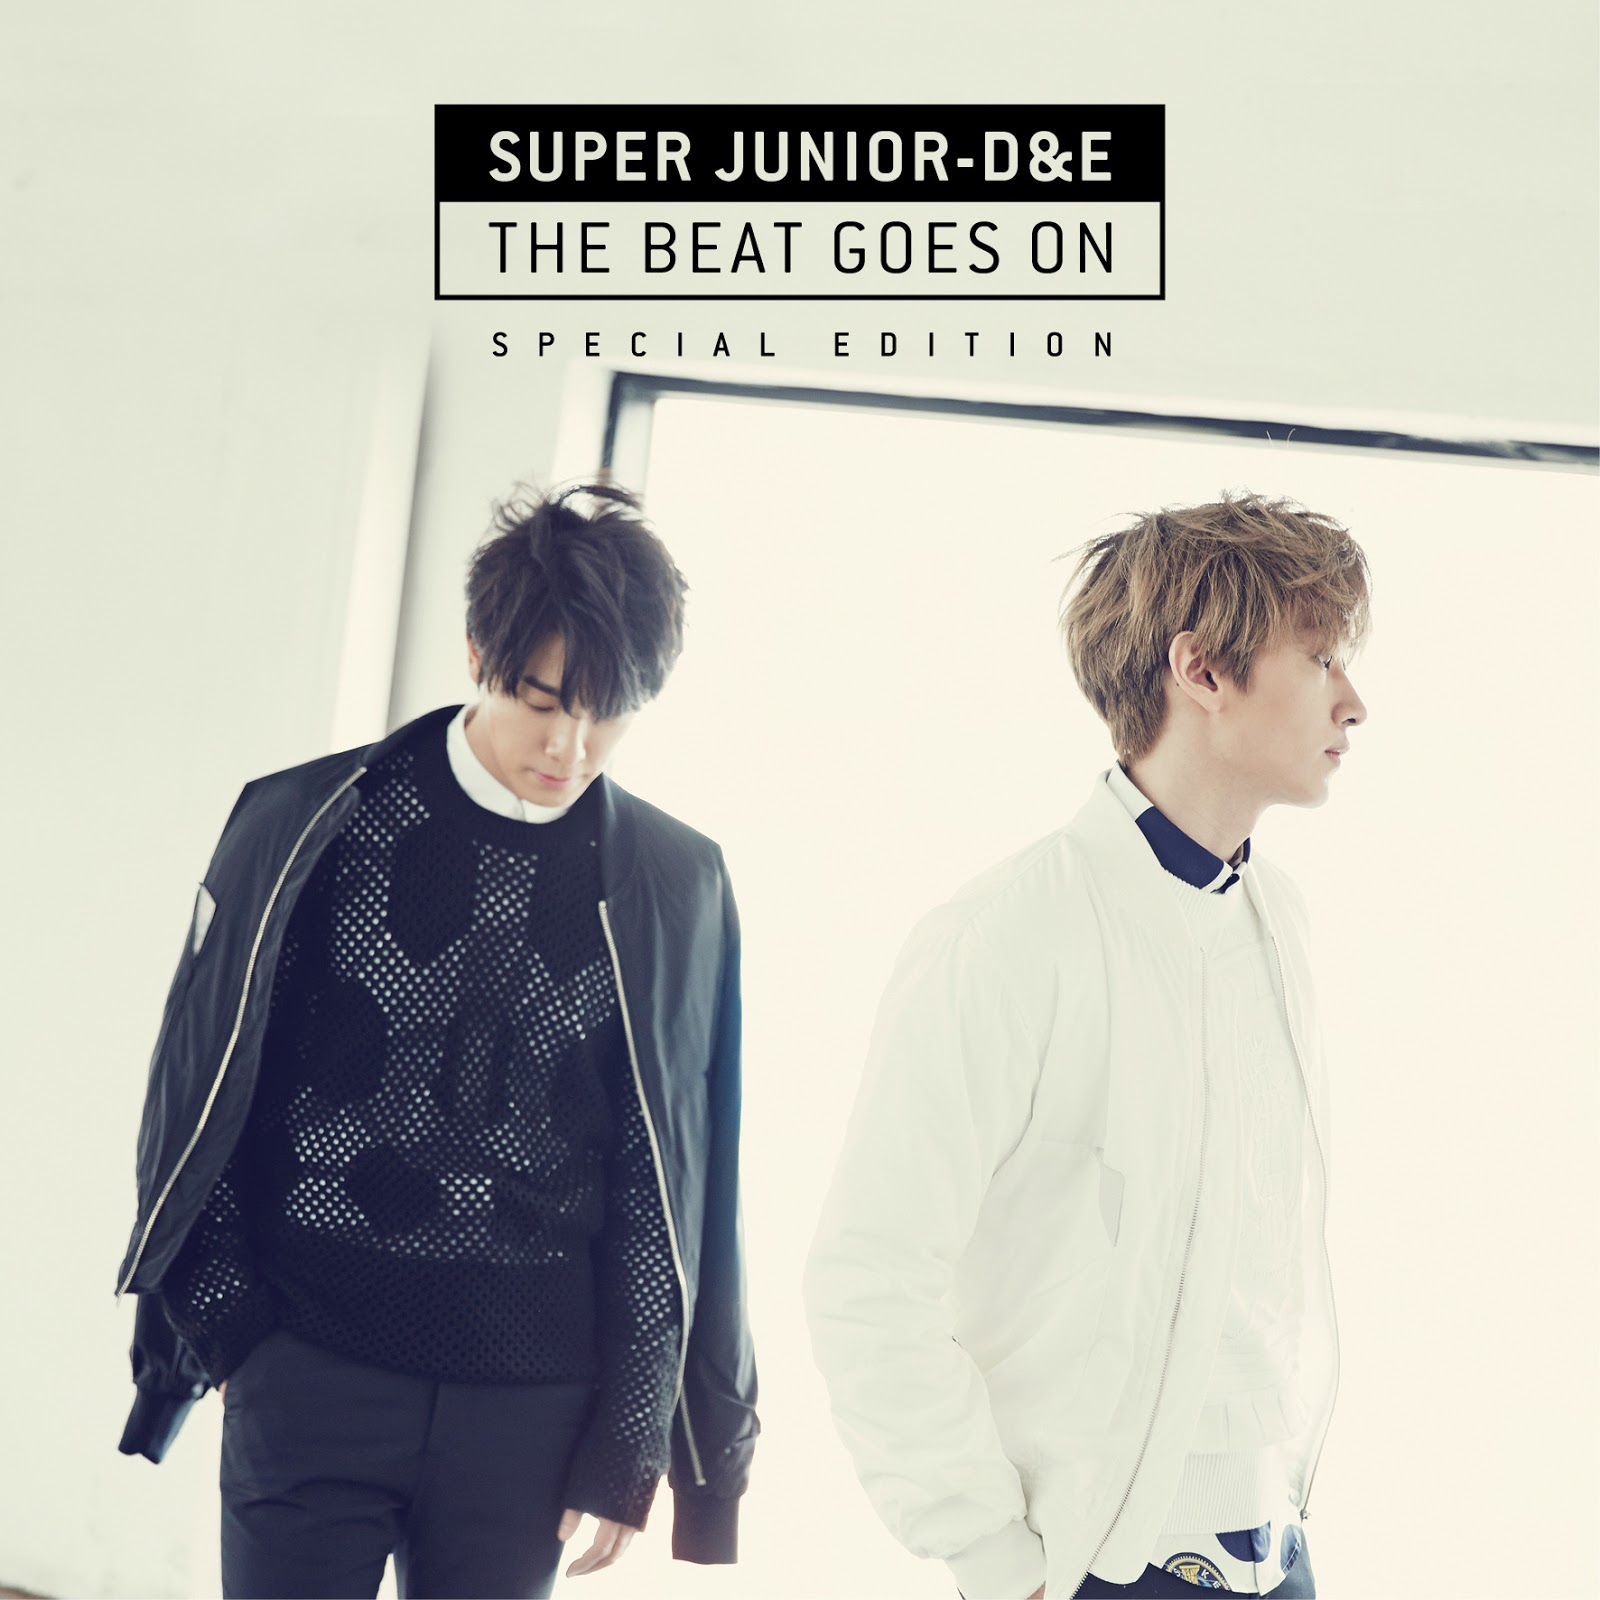 [Album] The Beat Goes On (Special Edition) - SUPER JUNIOR-D&E